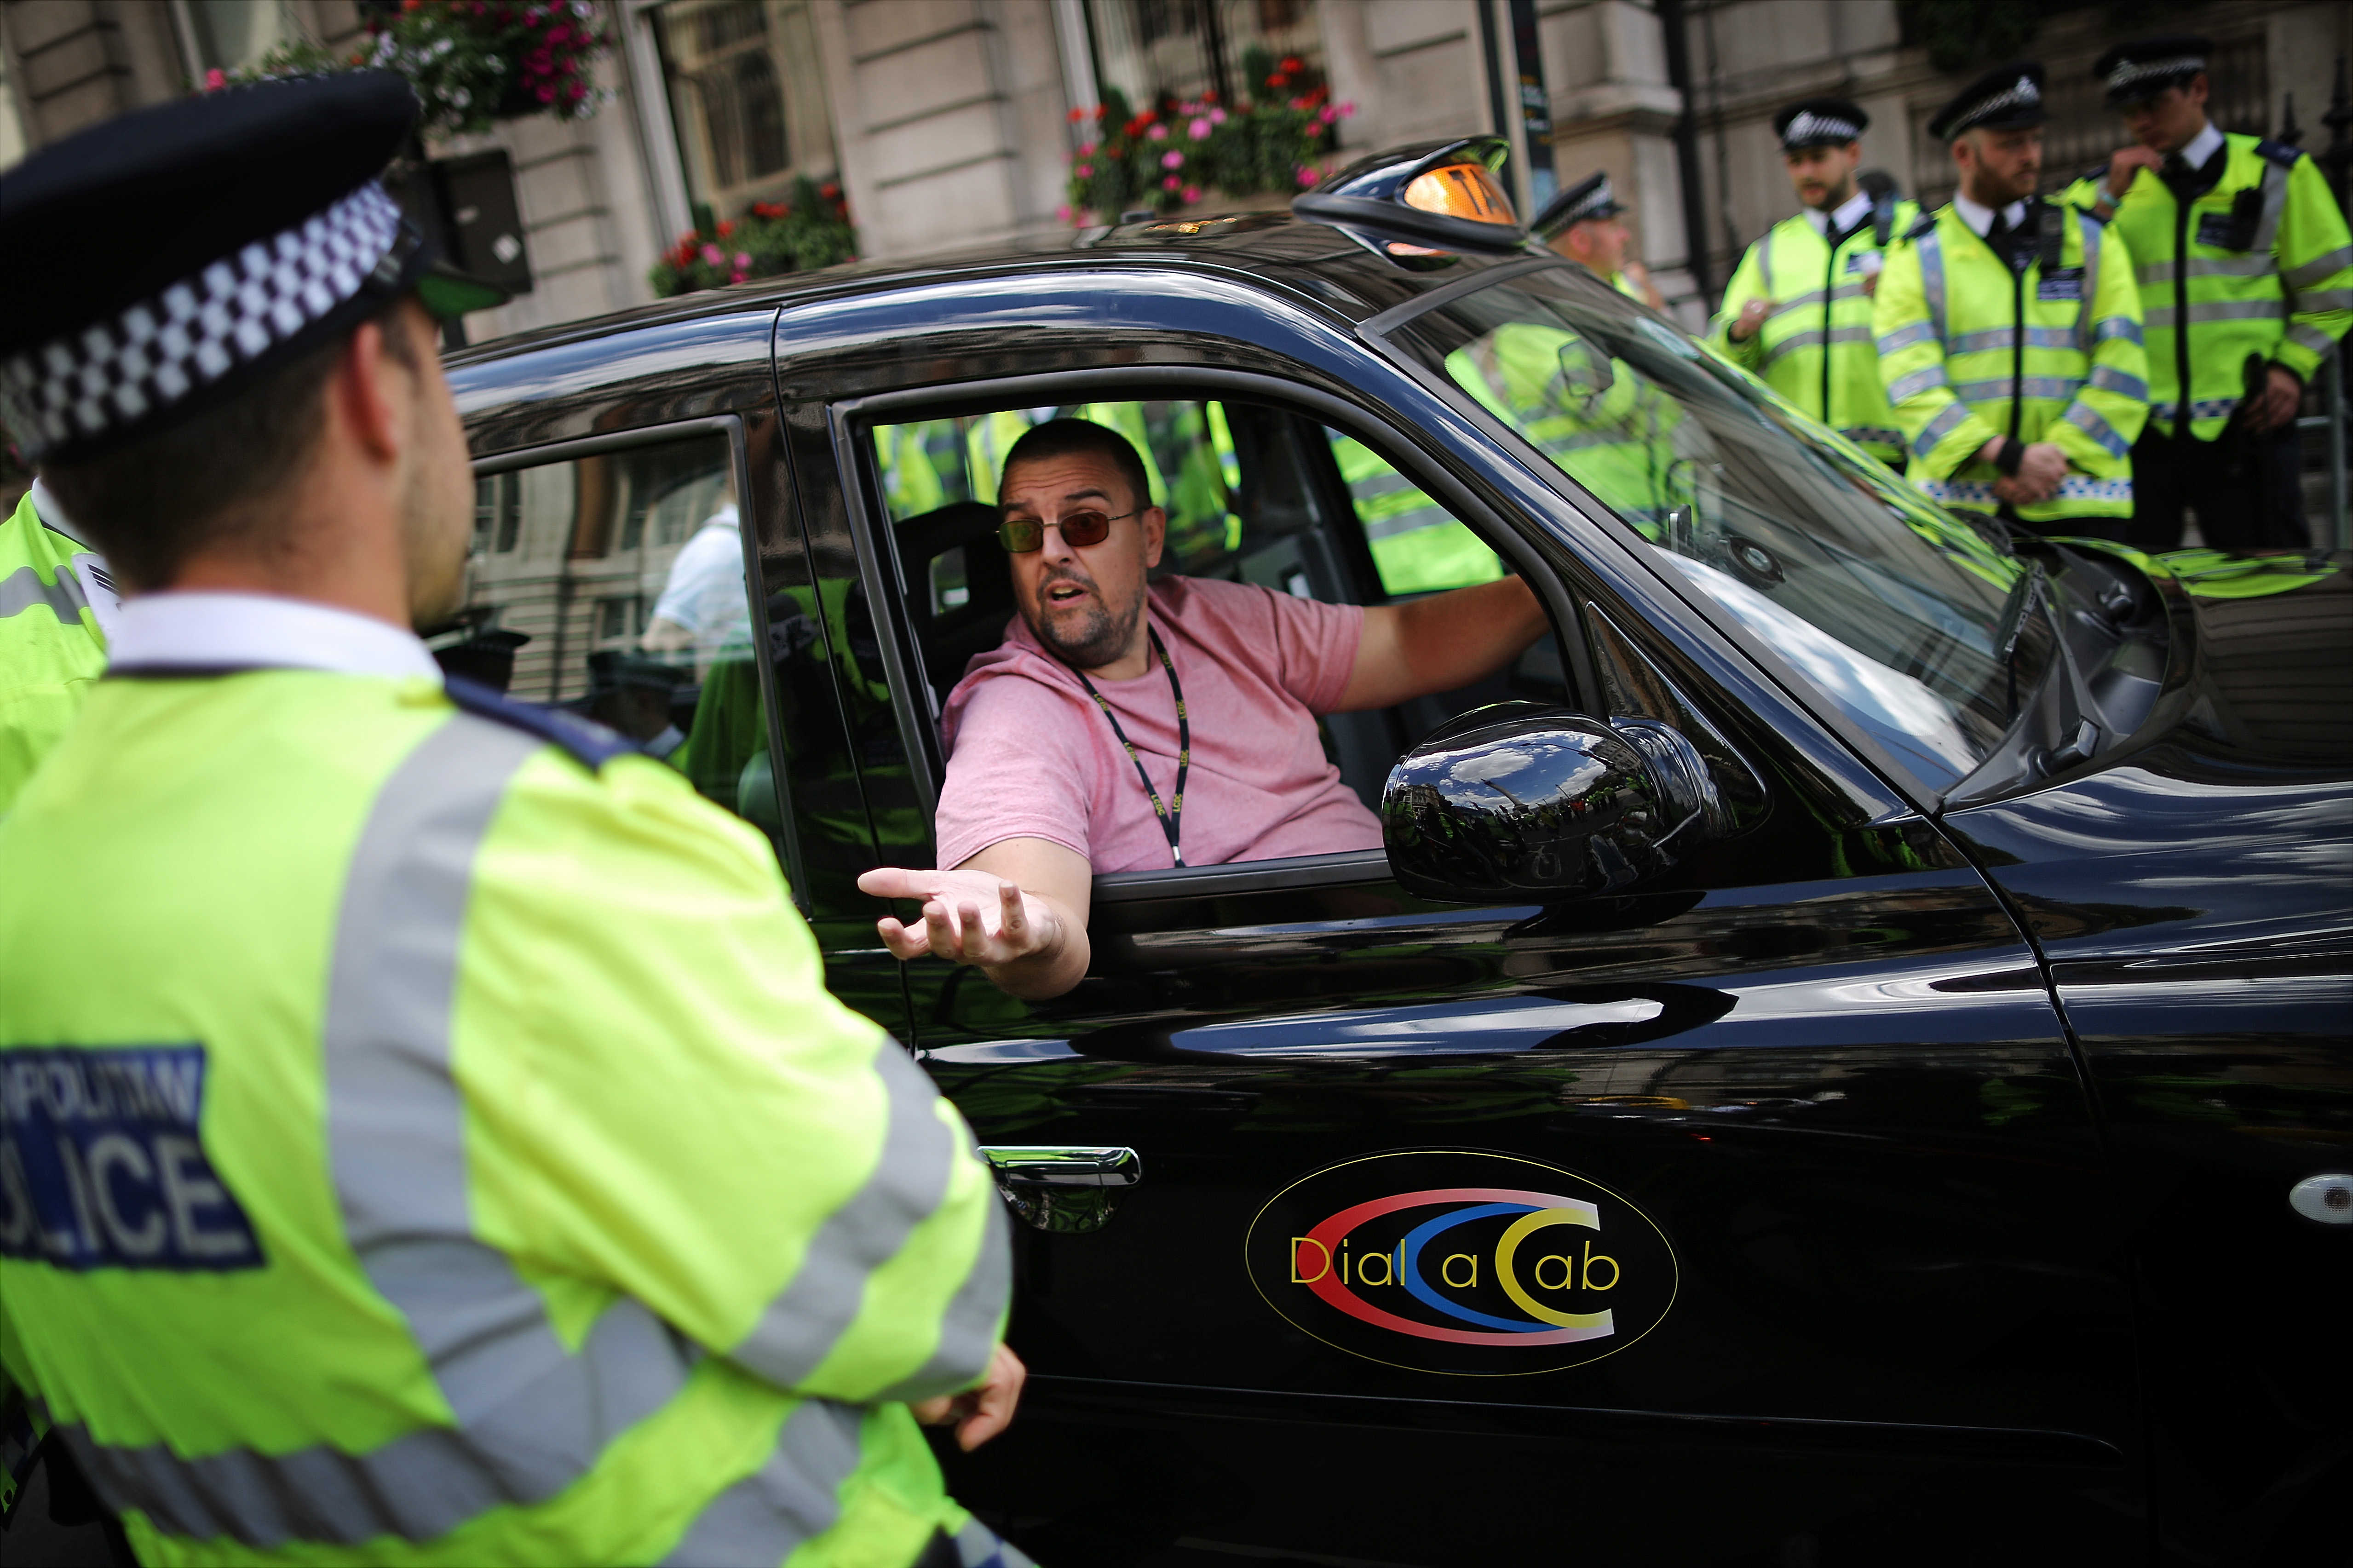 A London taxi driver speaks with Police Officers during a protest against a new smart phone app, 'Uber' on June 11, 2014 in London, England.